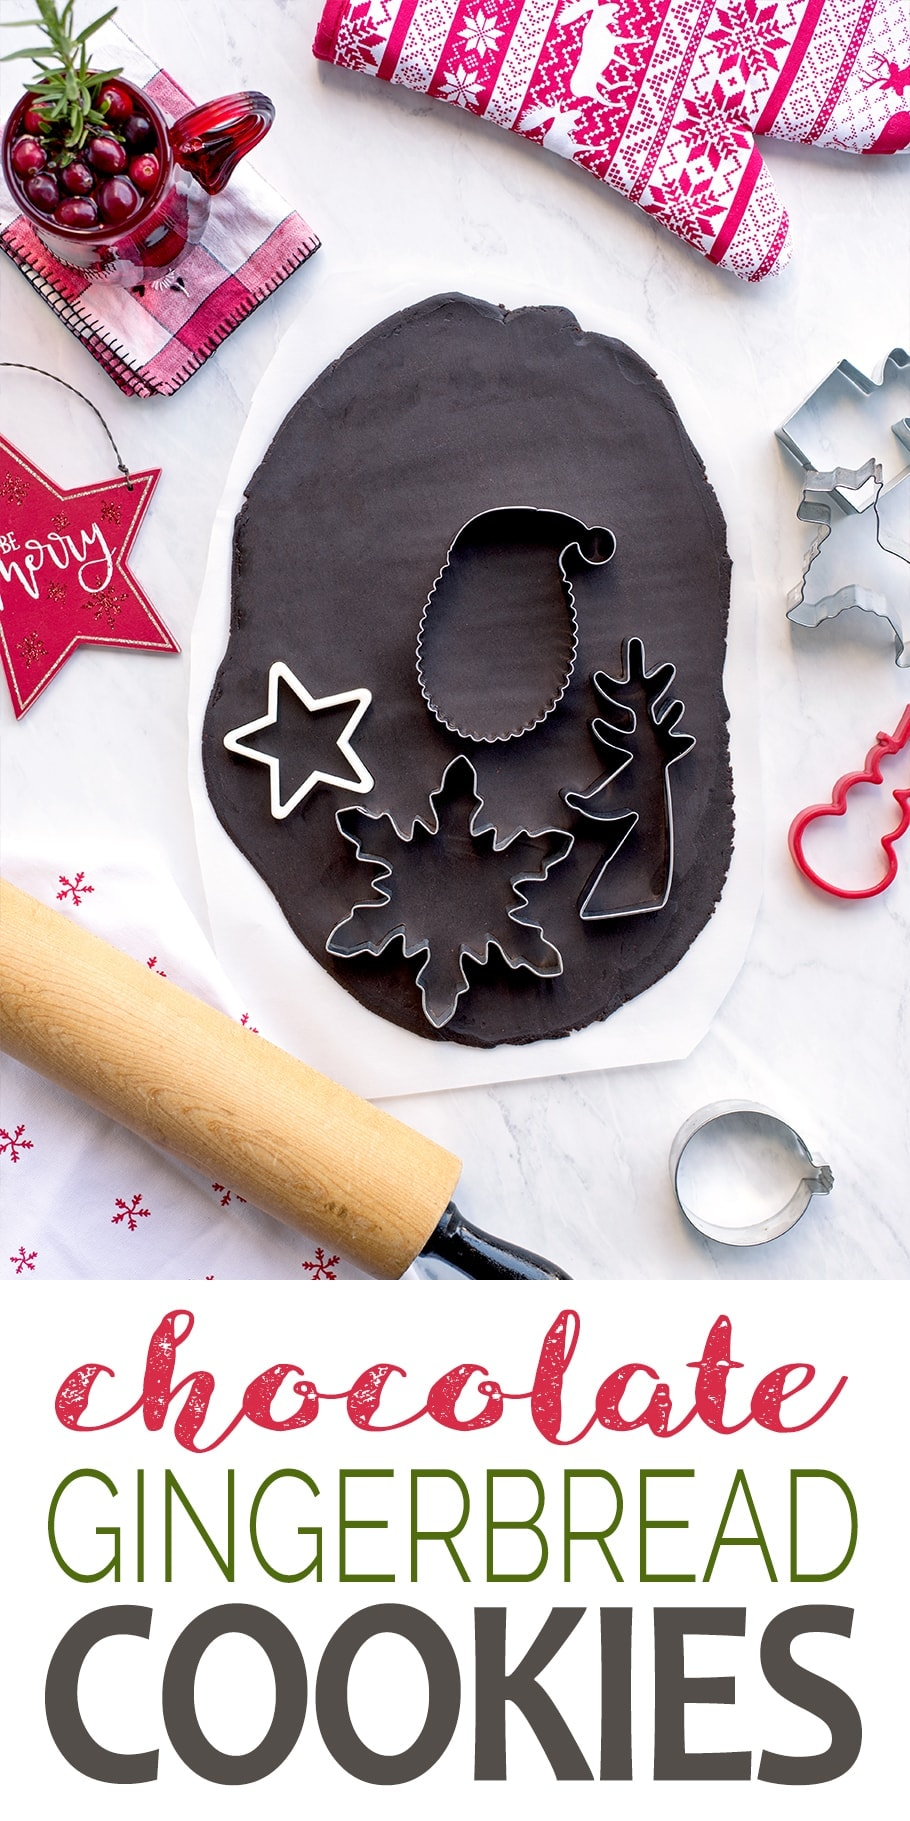 This Christmas cookie recipe combines the flavors of molasses and cocoa for a rolled chocolate gingerbread cookie that is fun to bake and decorate. #christmascookies #gingerbread #cookies #chocolaterecipes #Christmasrecipes #chocolategingerbread